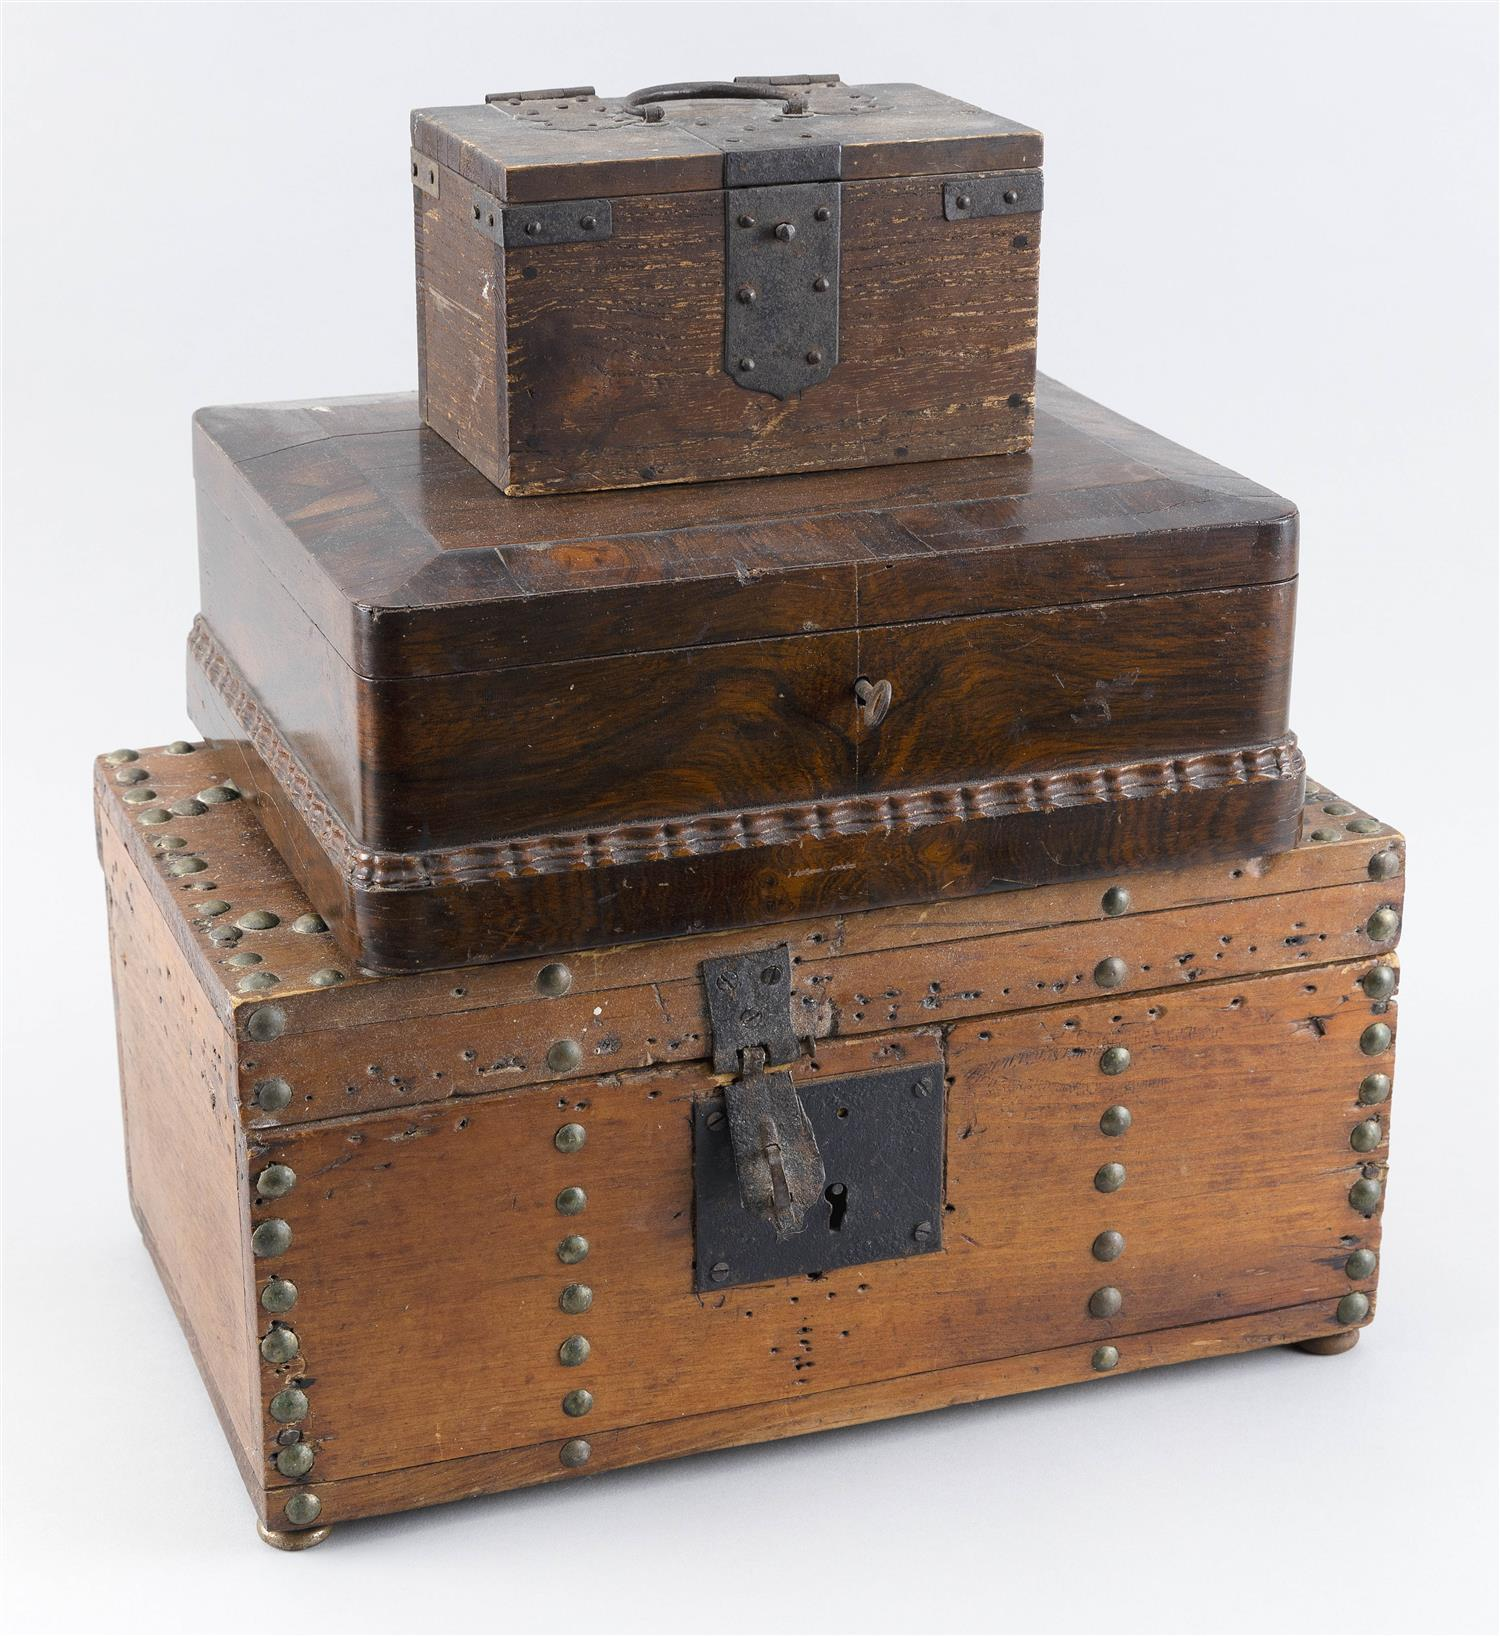 THREE SMALL LIFT-TOP BOXES One Japanese with iron mounts, one English in mahogany veneer, and one probably American in pine with bra...